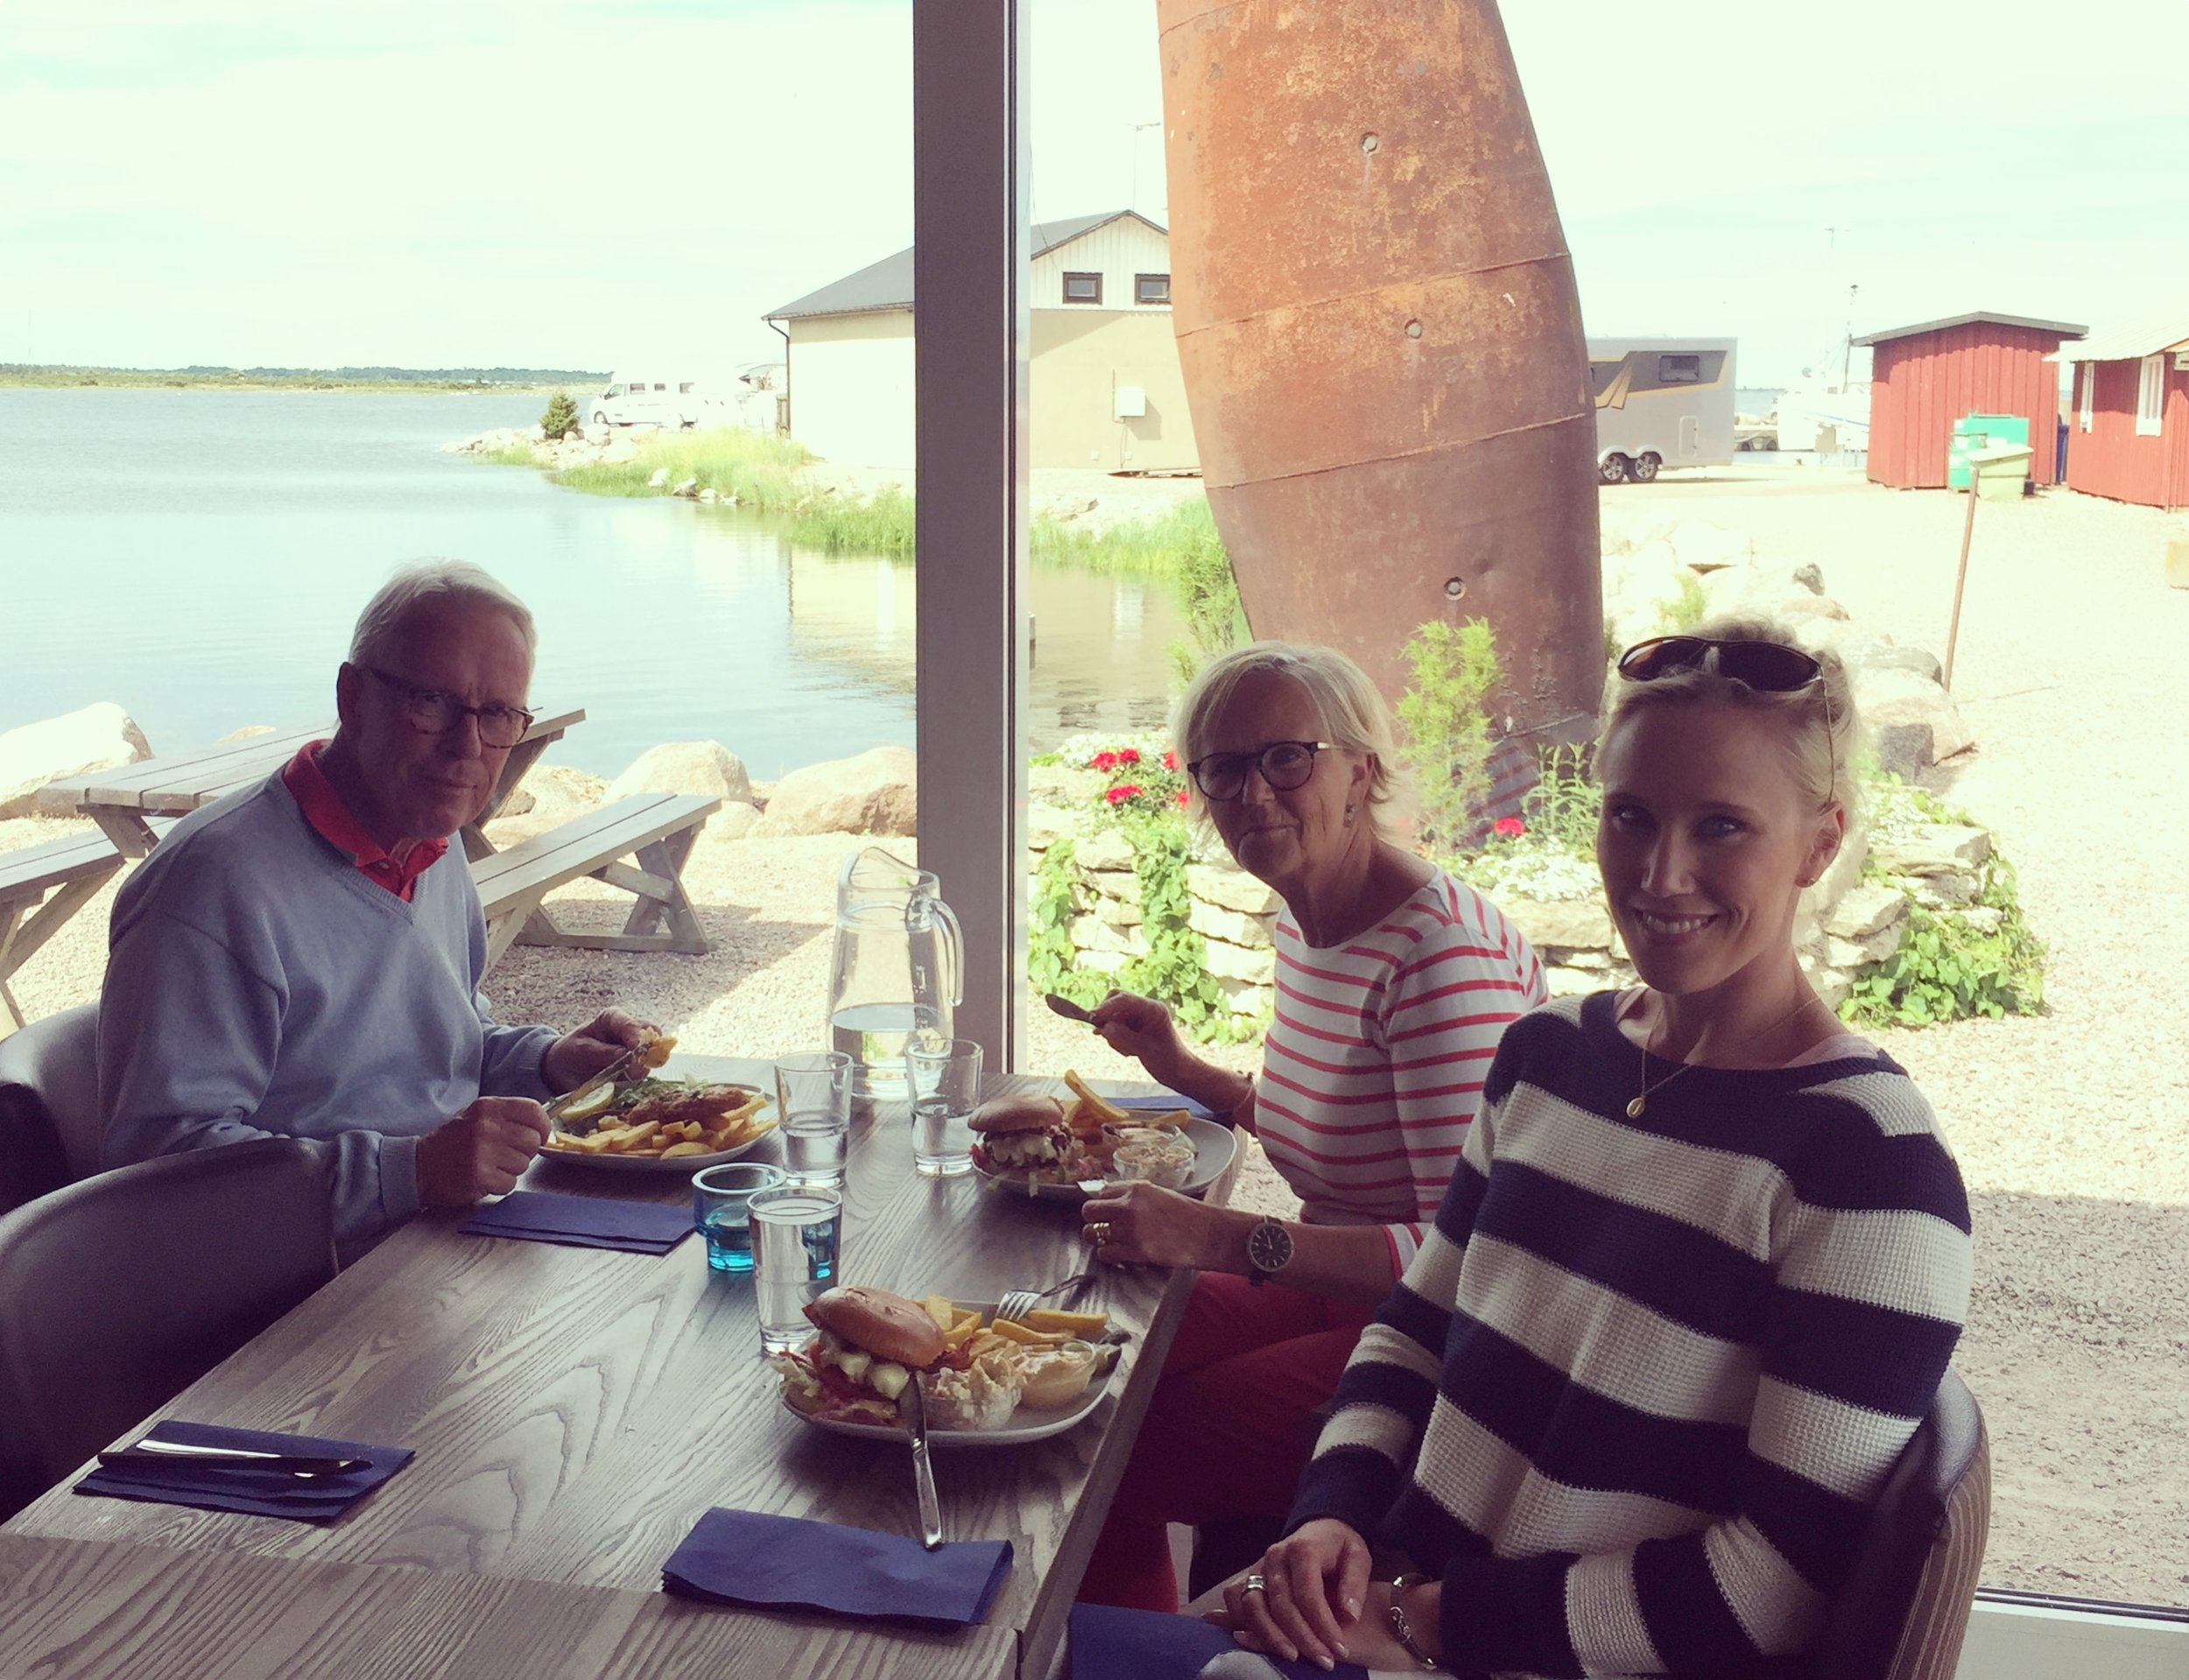 Lunching down at Kårehamn.